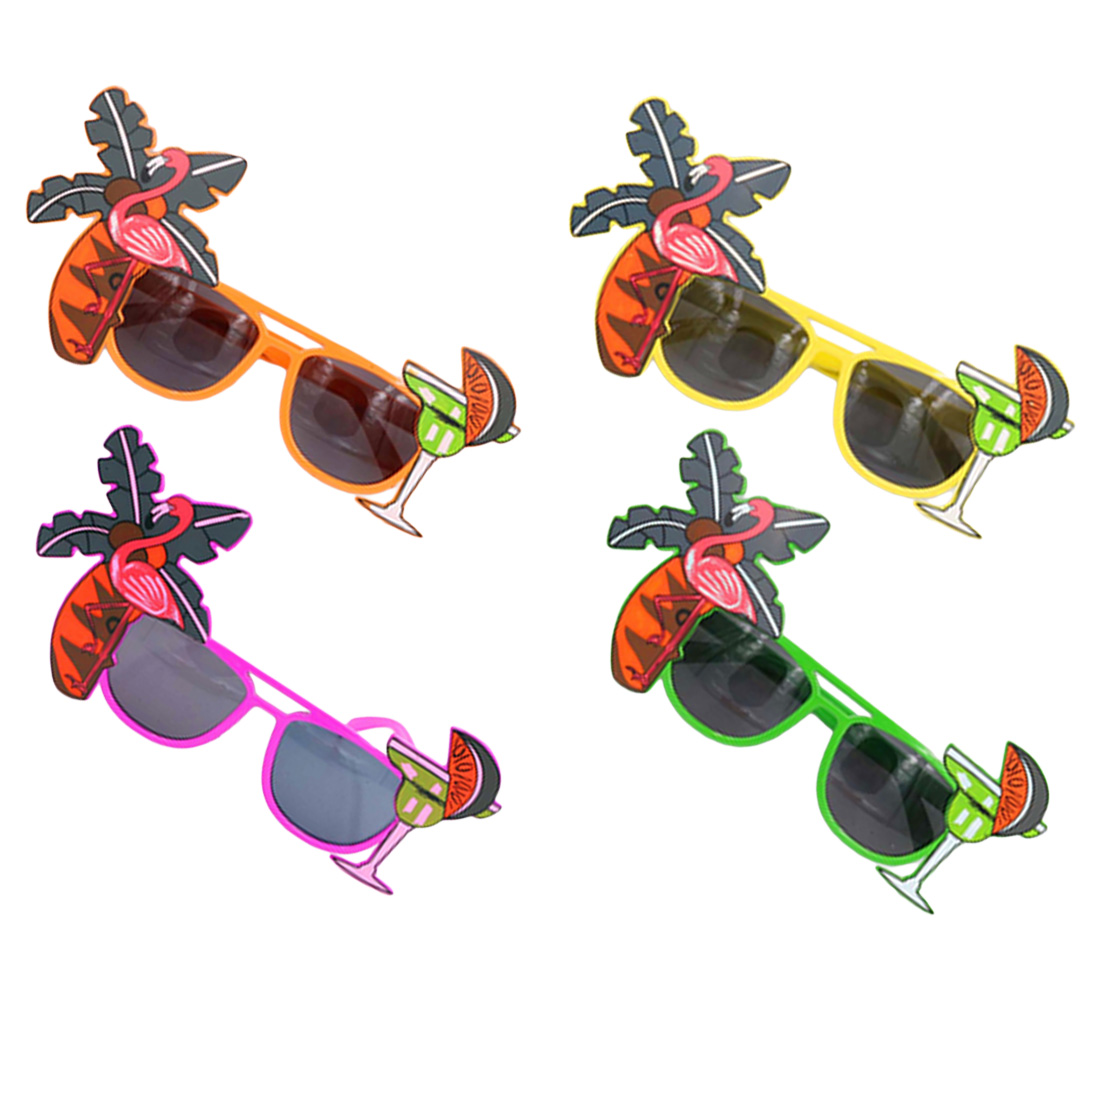 2019 Beach Party Decorations Wedding Decor Pineapple Sunglasses Hawaiian Funny Glasses Event Supplies Novelty Flamingo Party in Sunglasses from Mother Kids